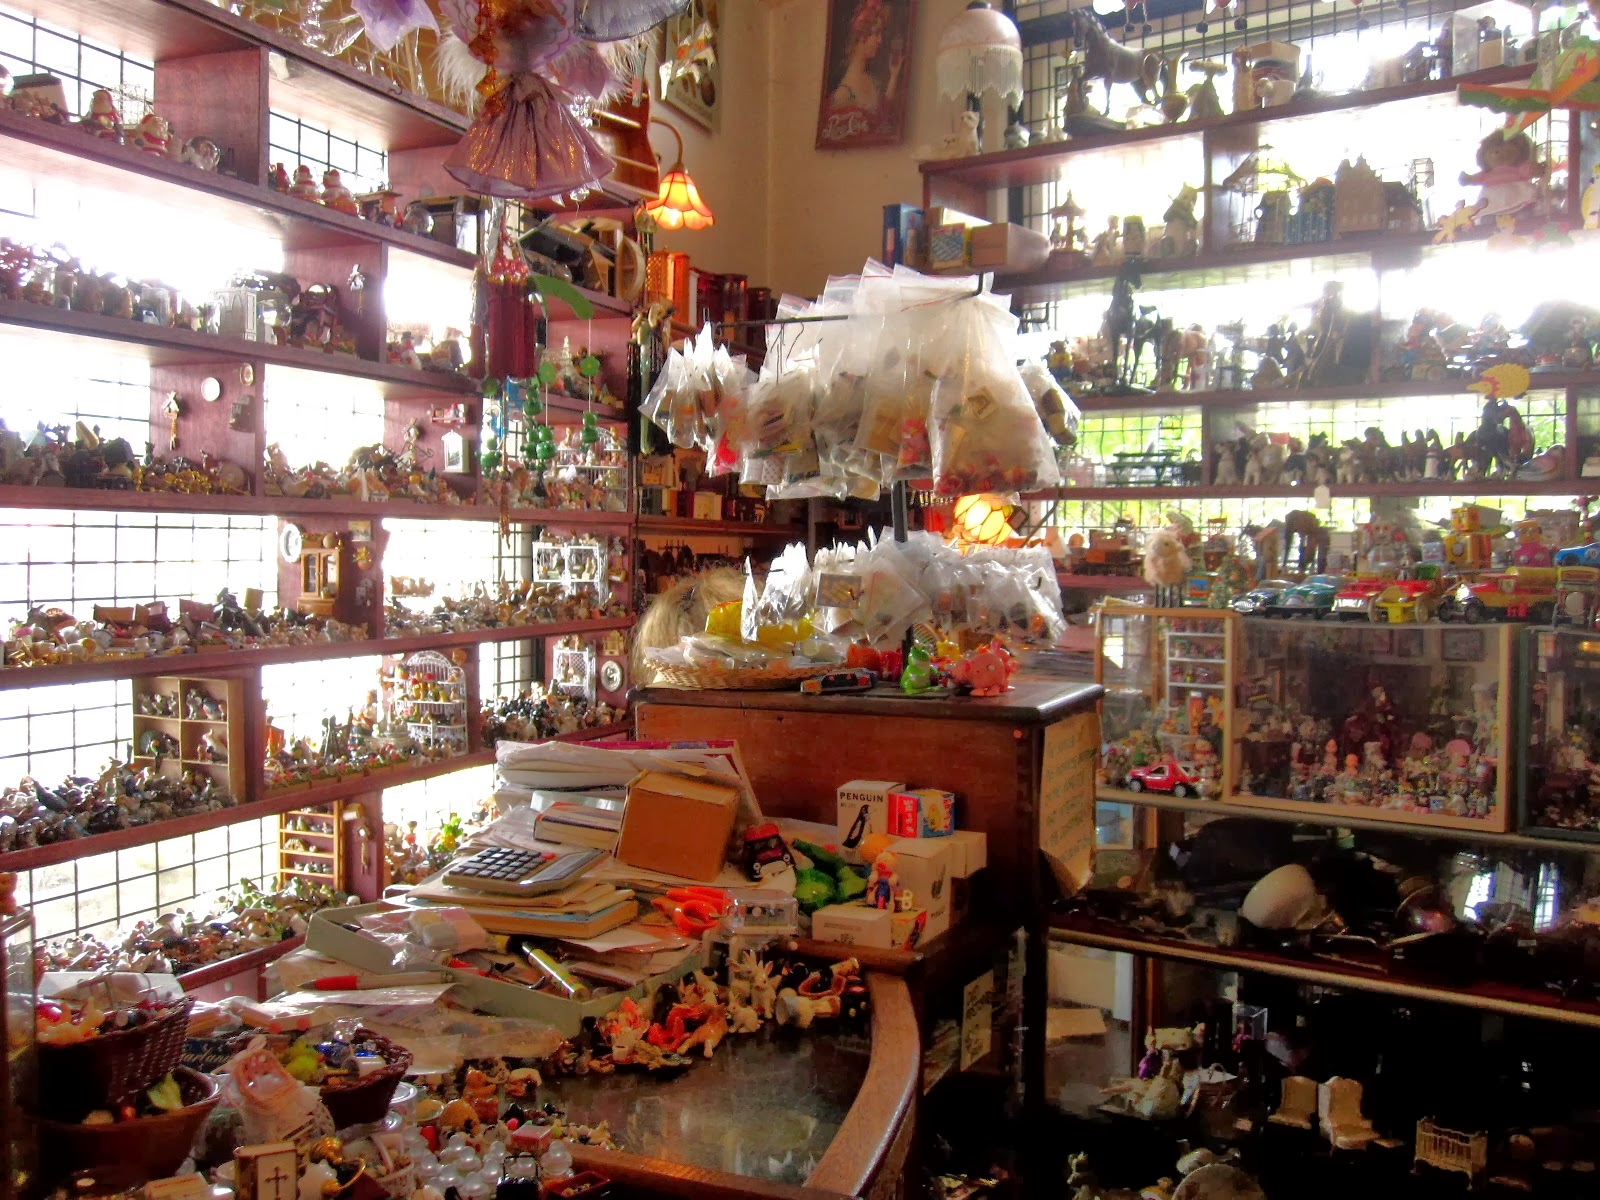 Interior view of The Old Tythe Barn dolls house shop at Blackheath